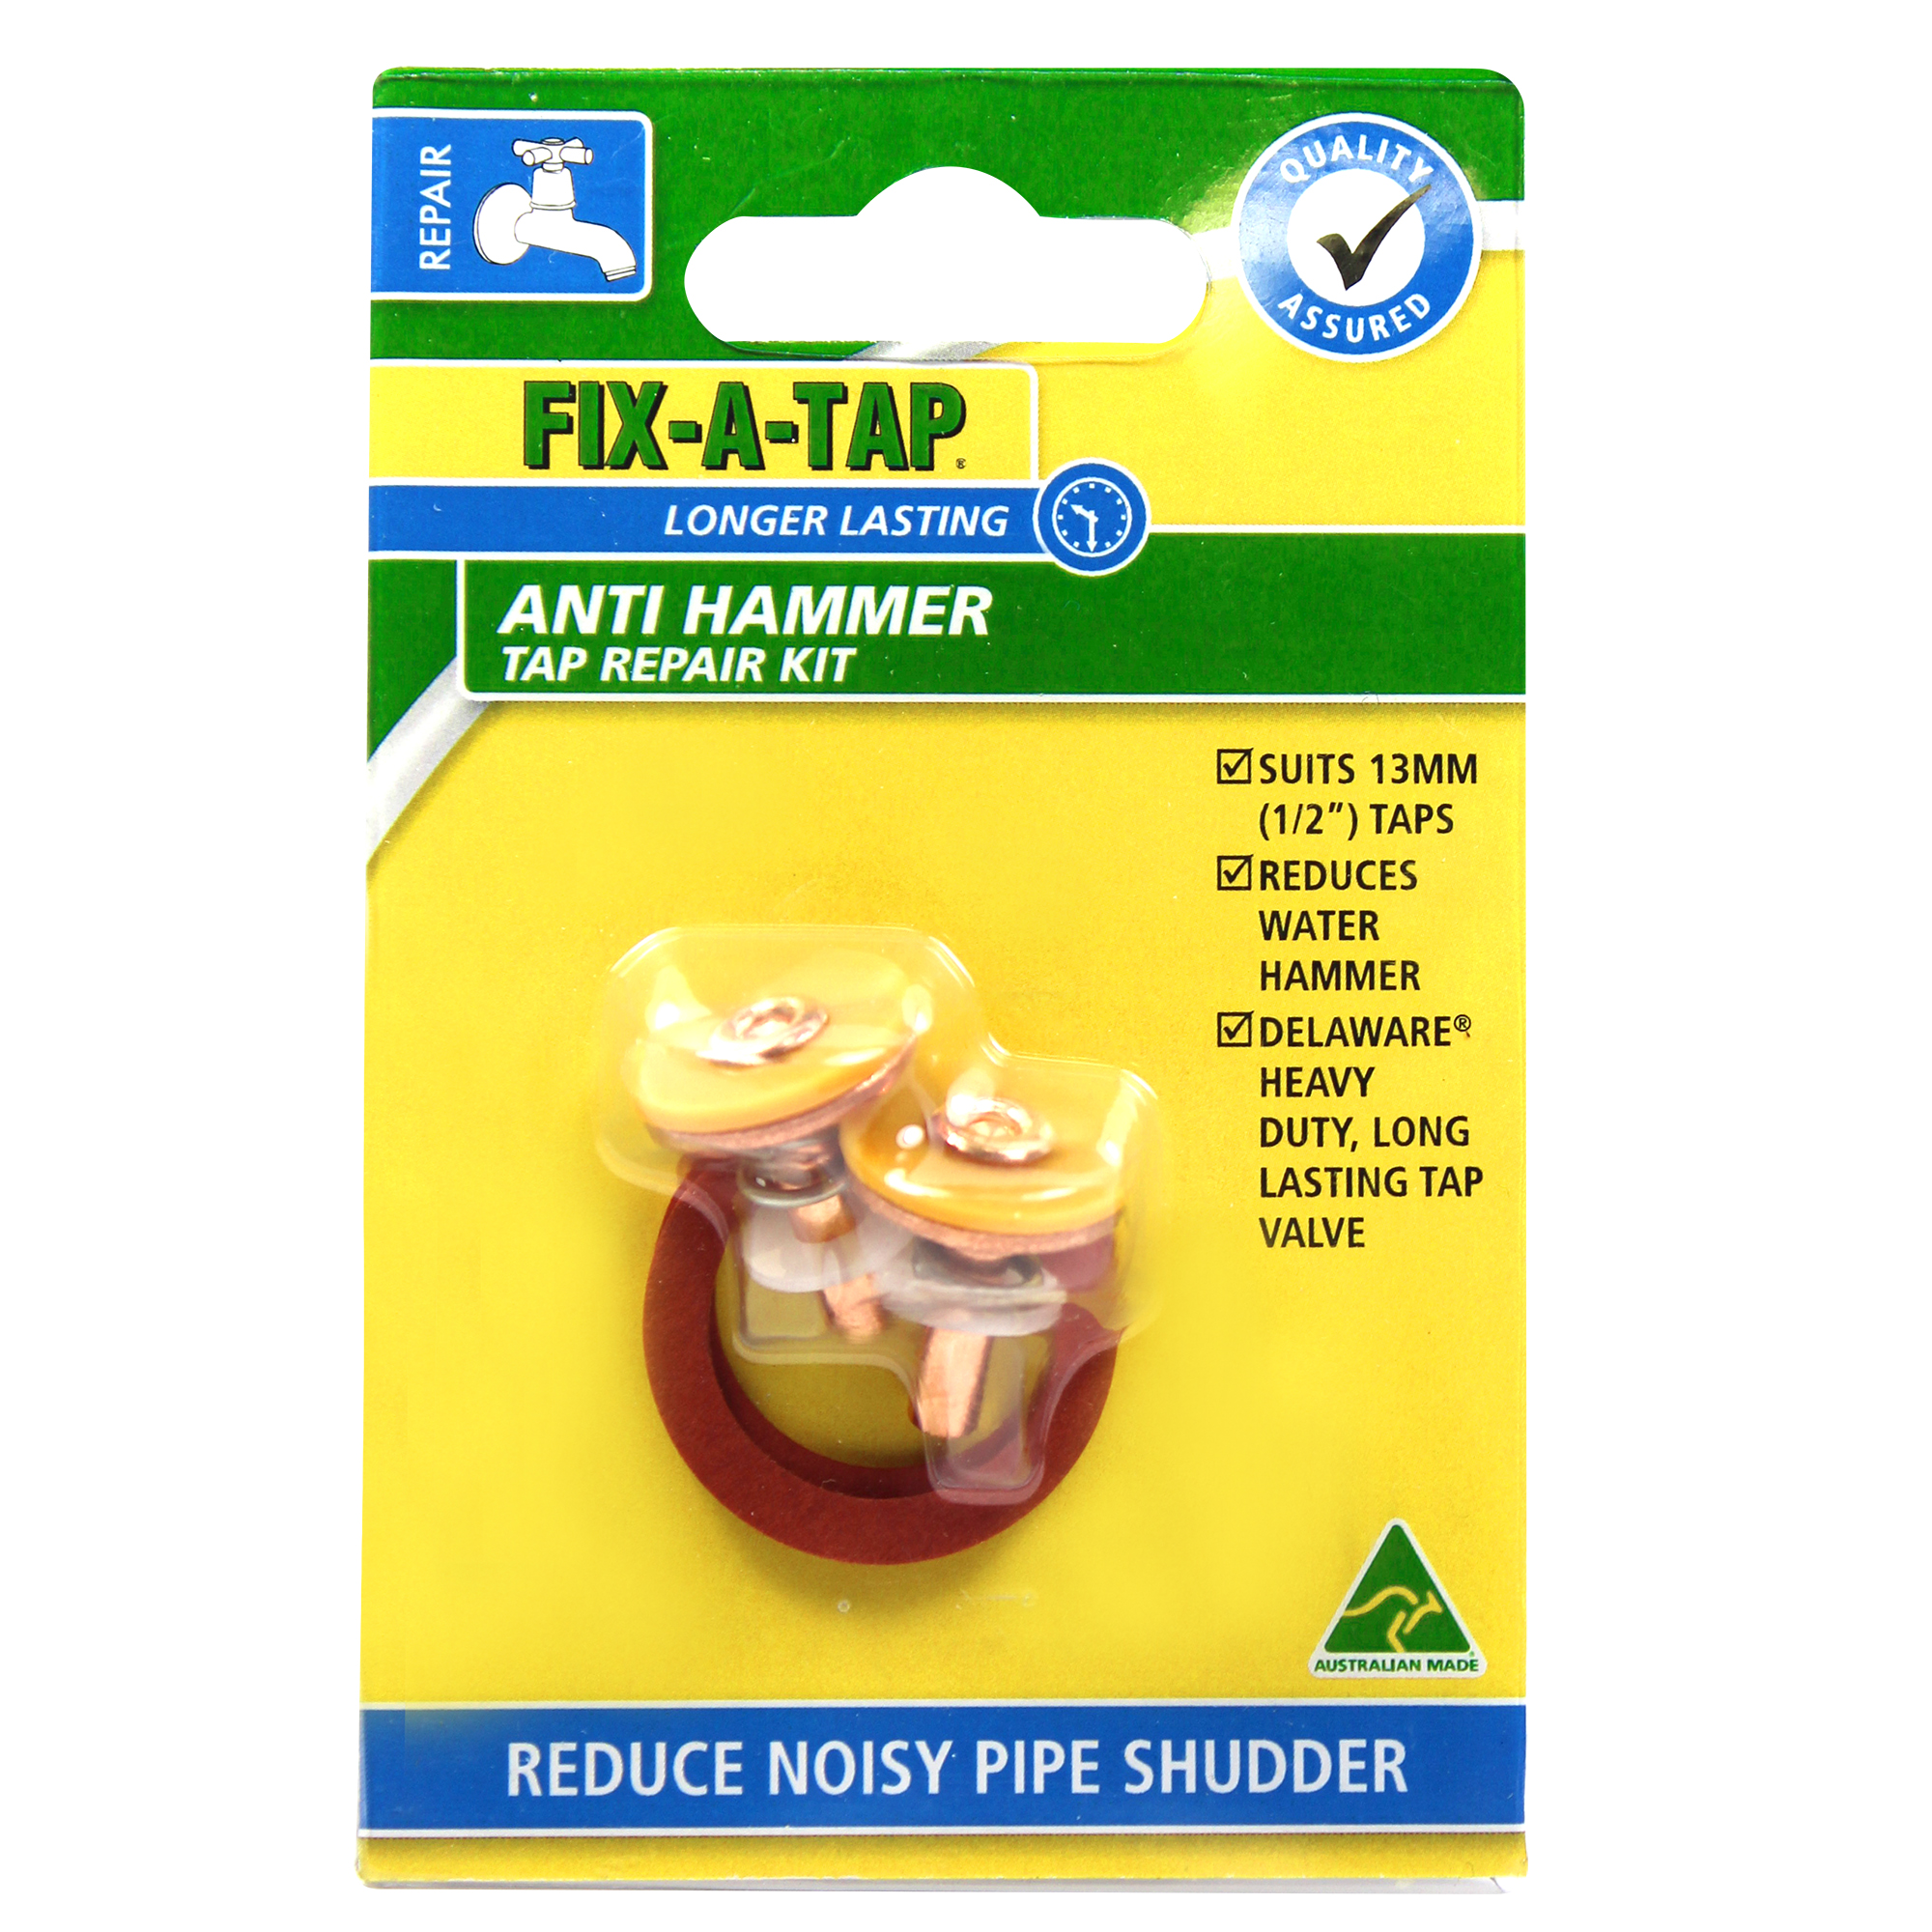 Anti-Hammer Tap Repair Kits - Tap Valve Repair Kits - FIX-A-TAP